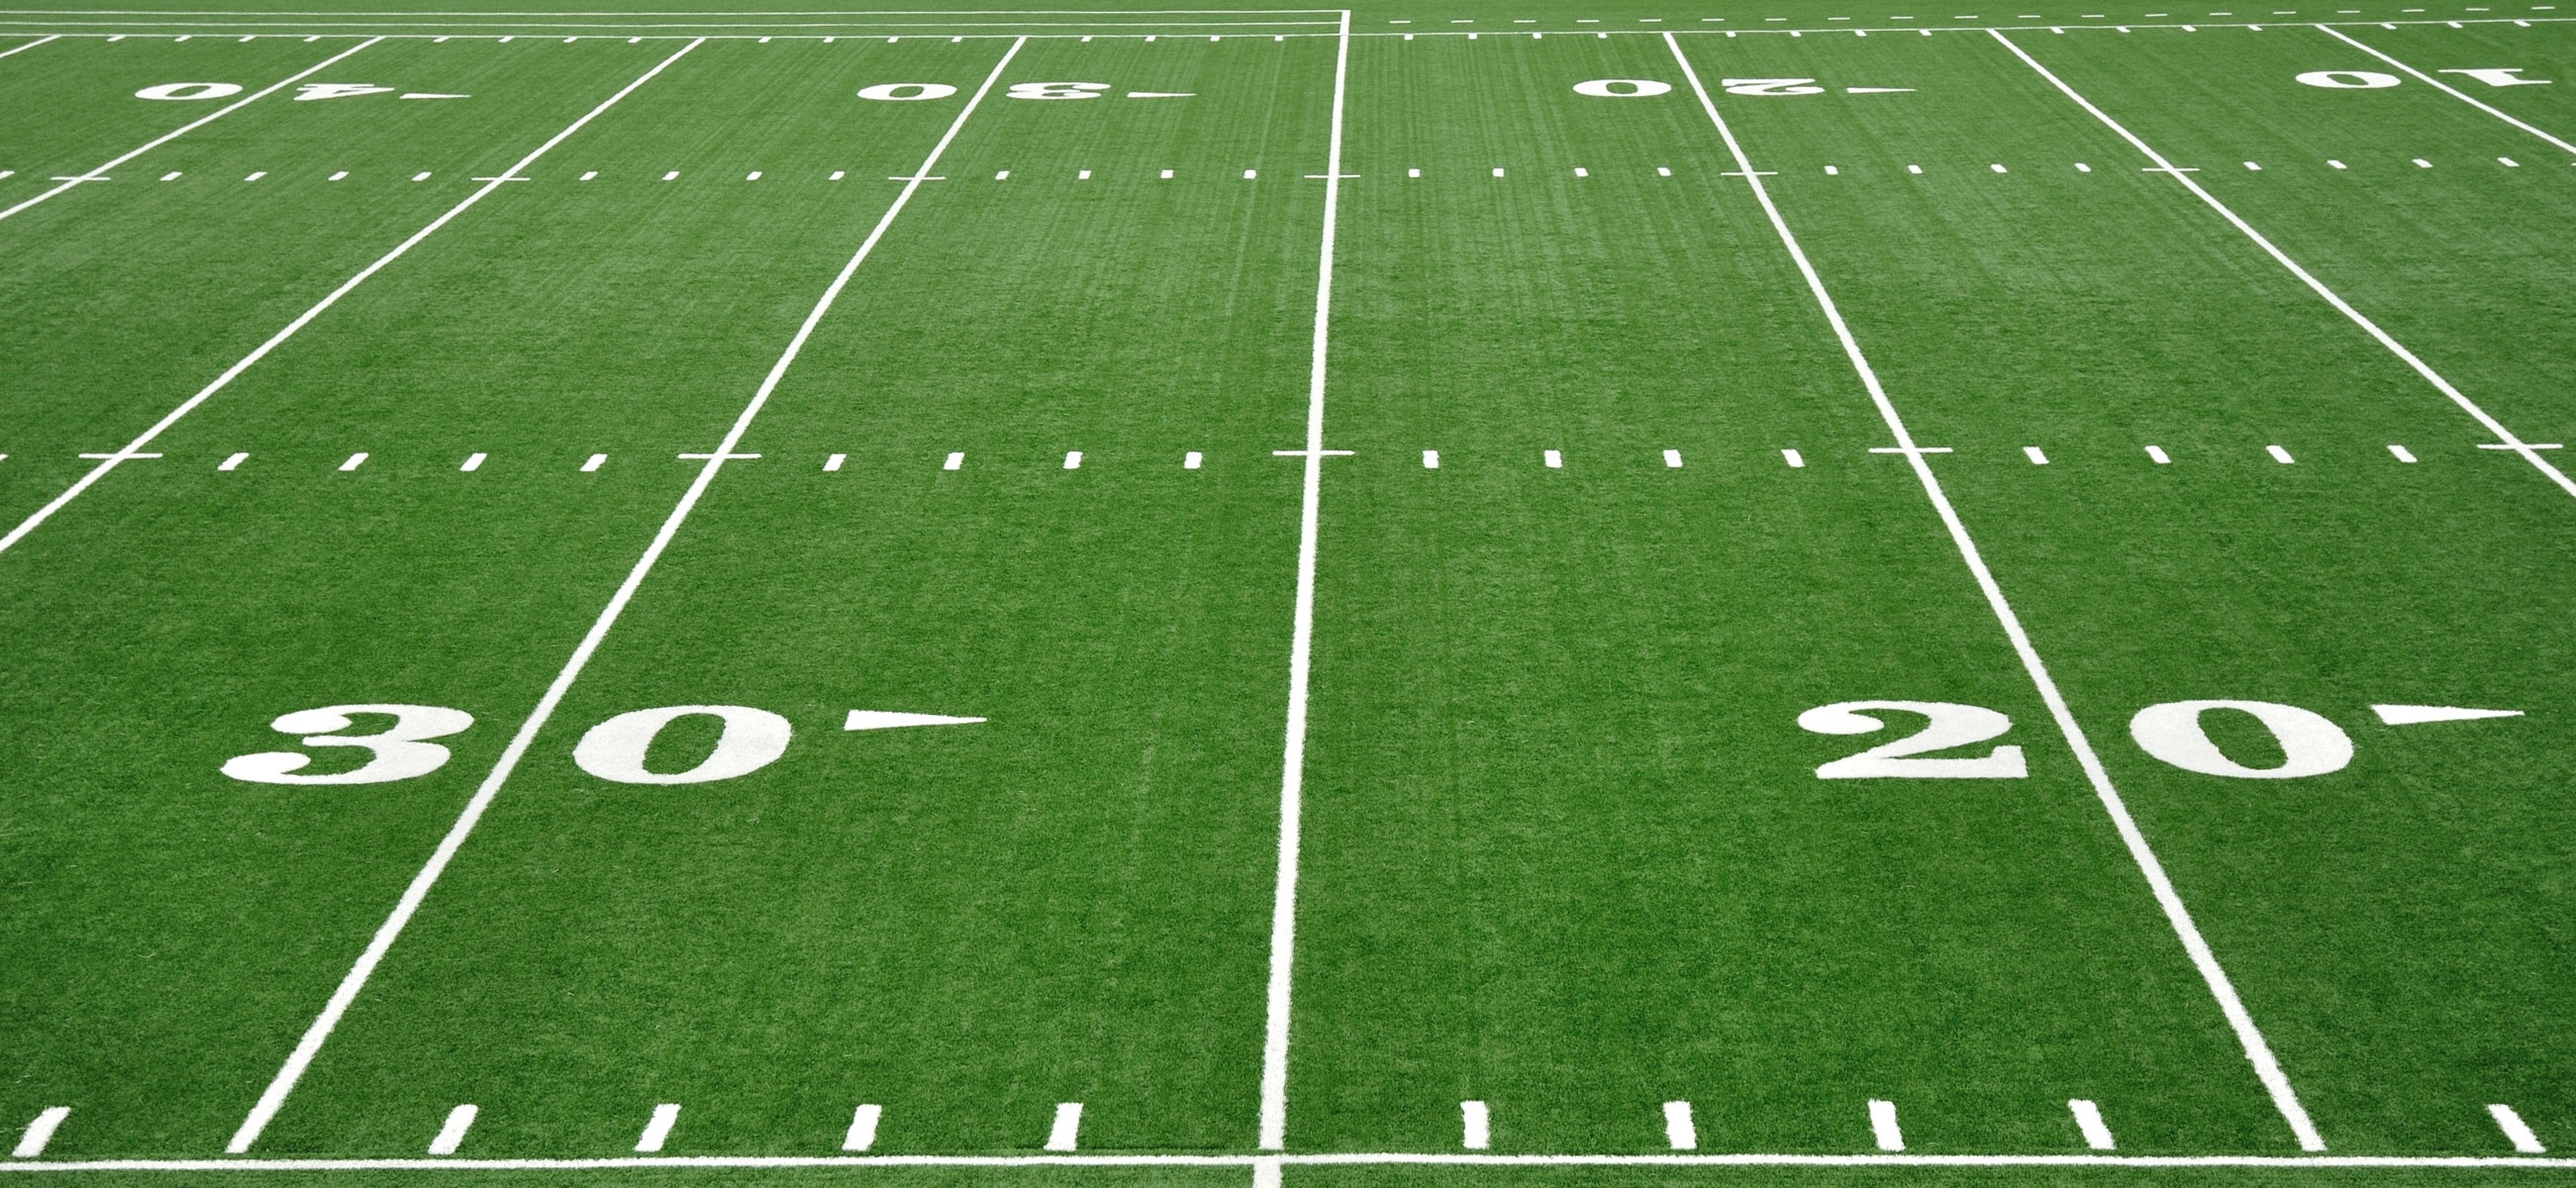 blank football field template - football field blank template imgflip